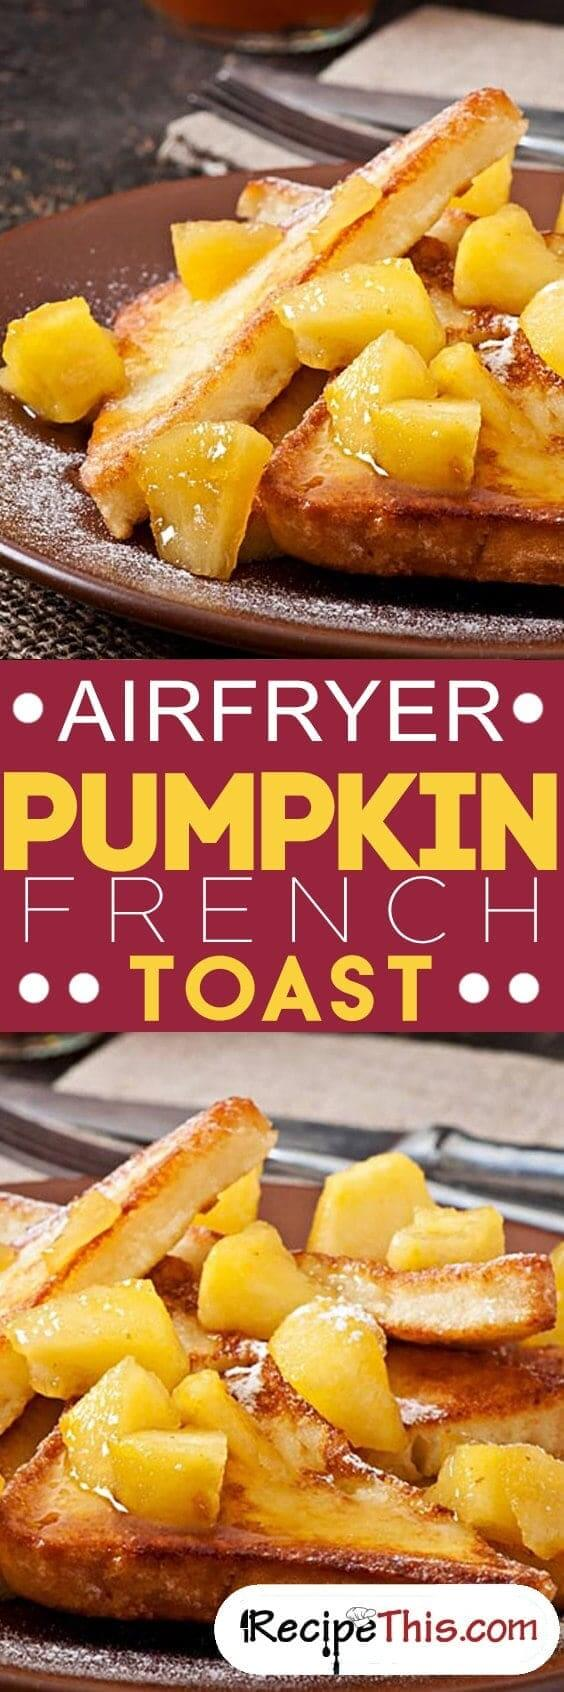 Airfryer Pumpkin French Toast From RecipeThis.com